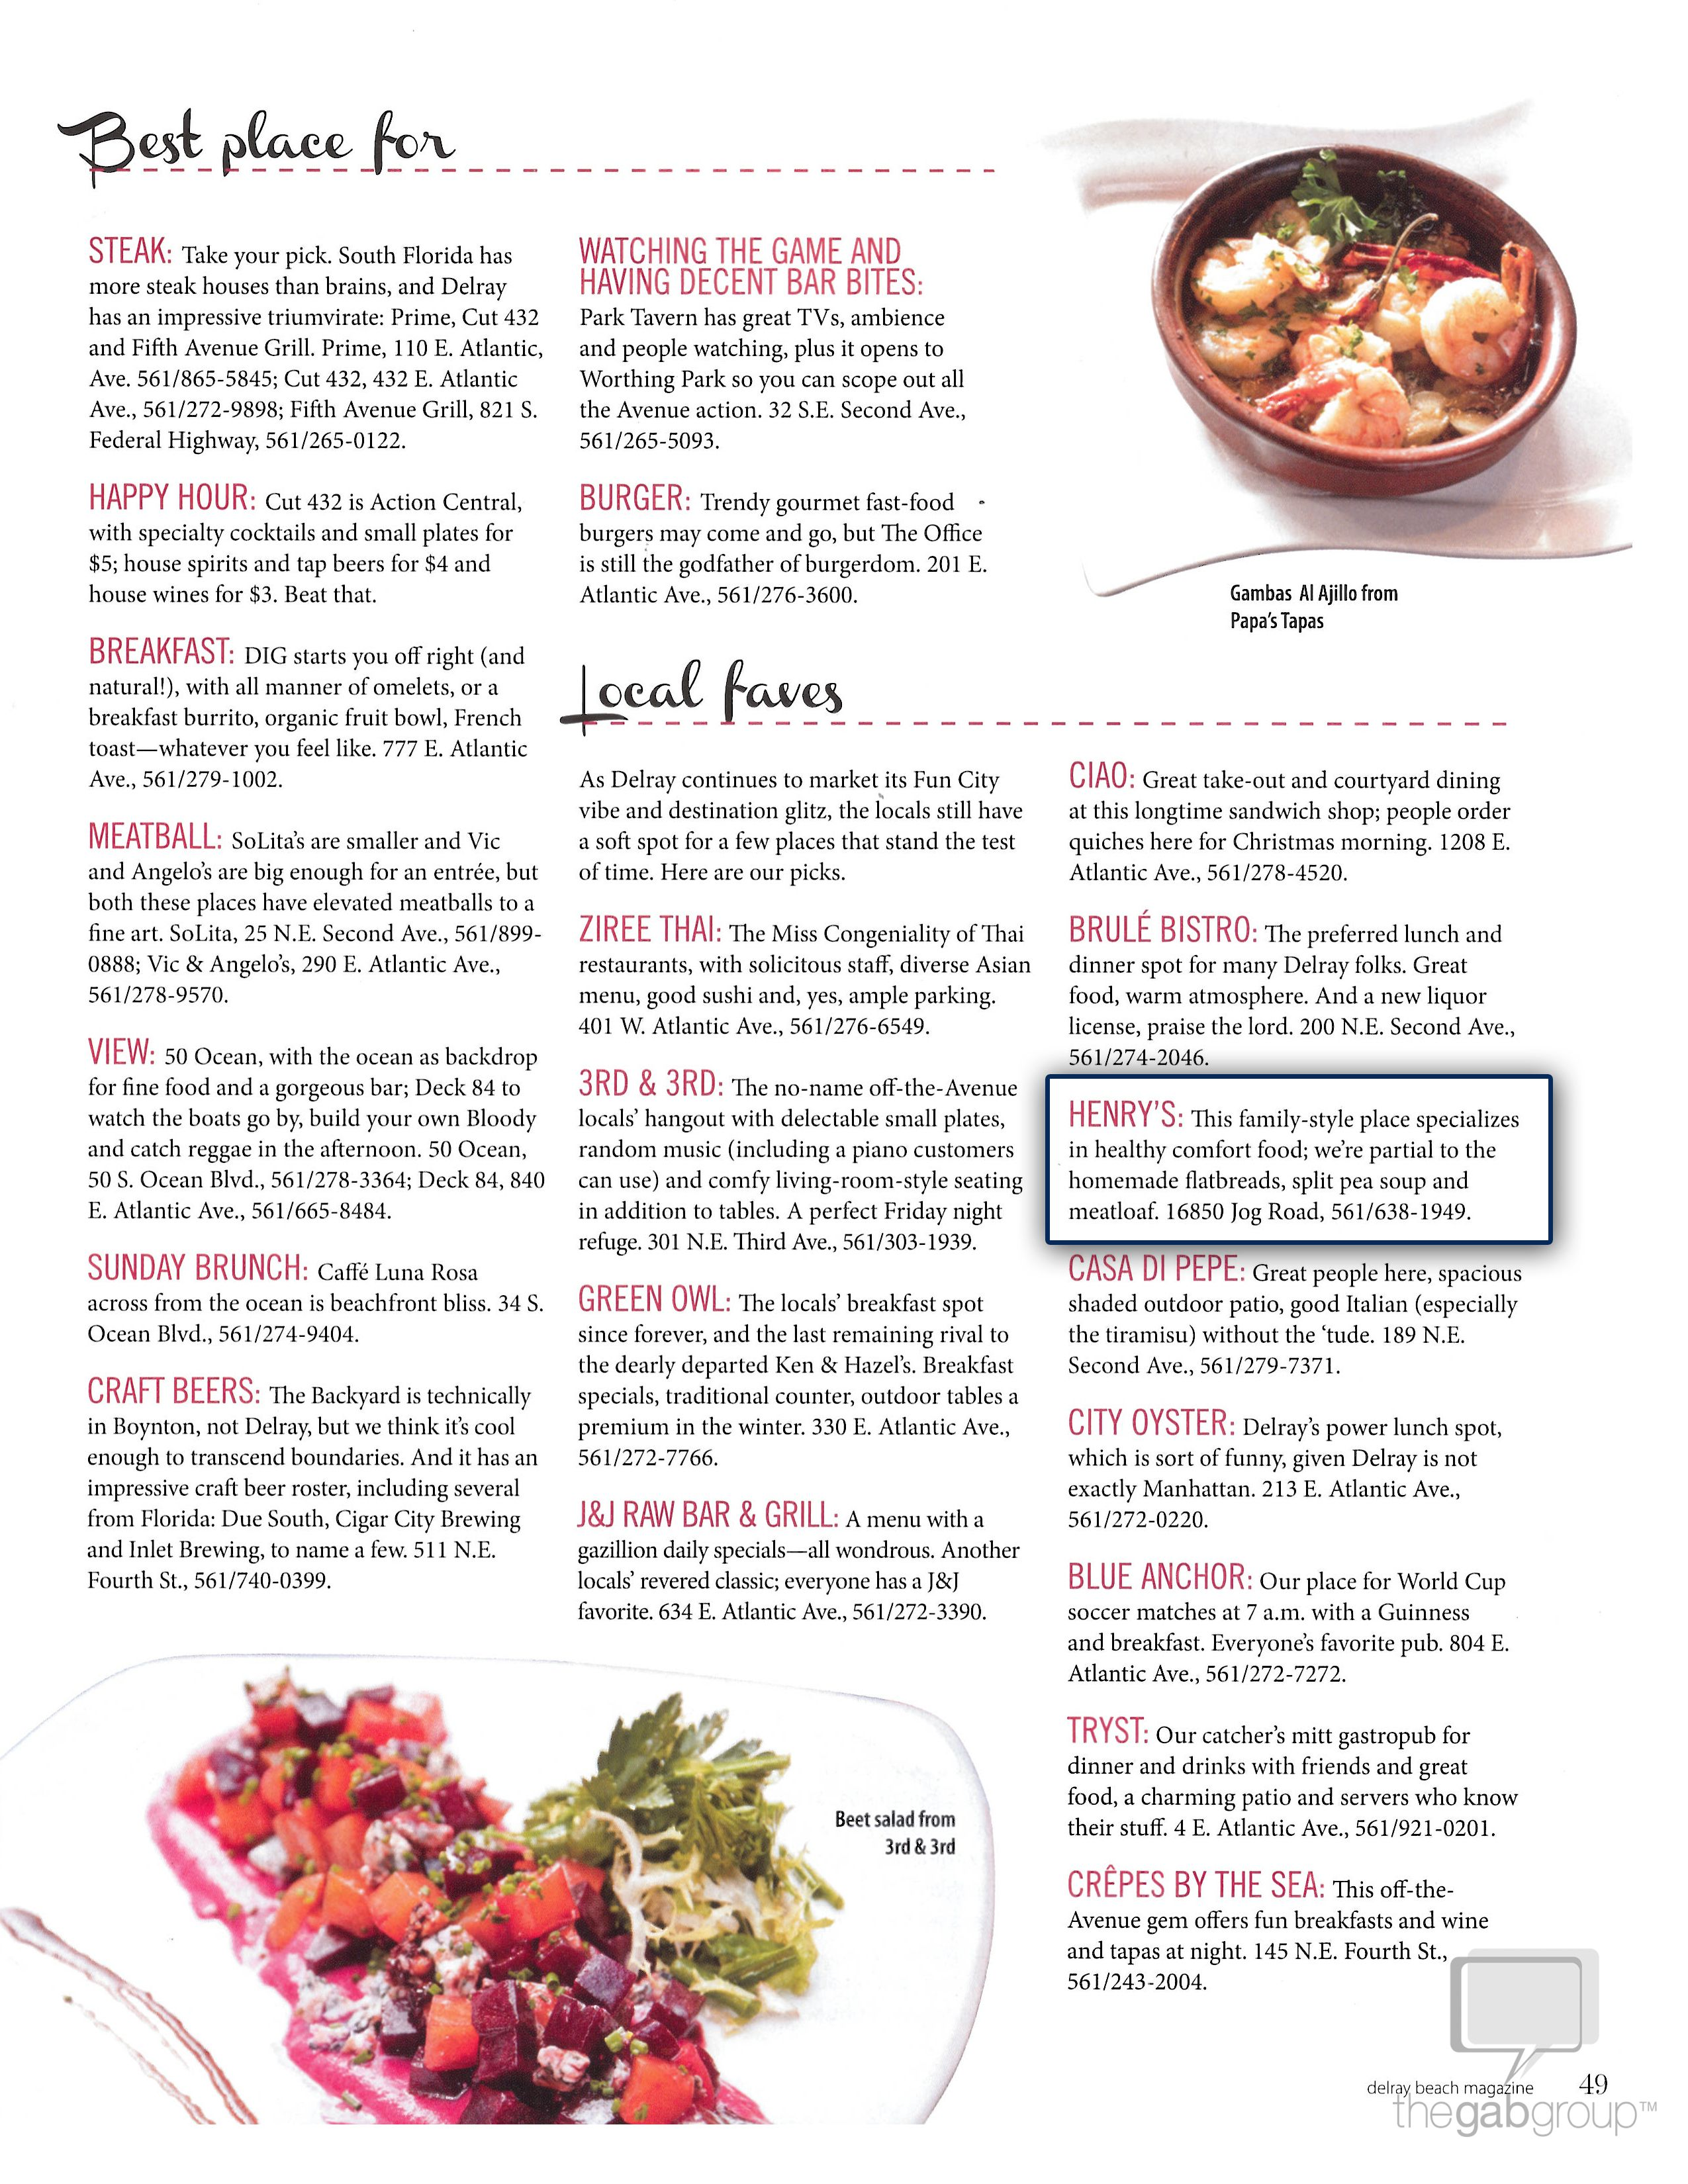 RRG_HENRYS_Press_DelrayBeachMag_092013_p3.jpg